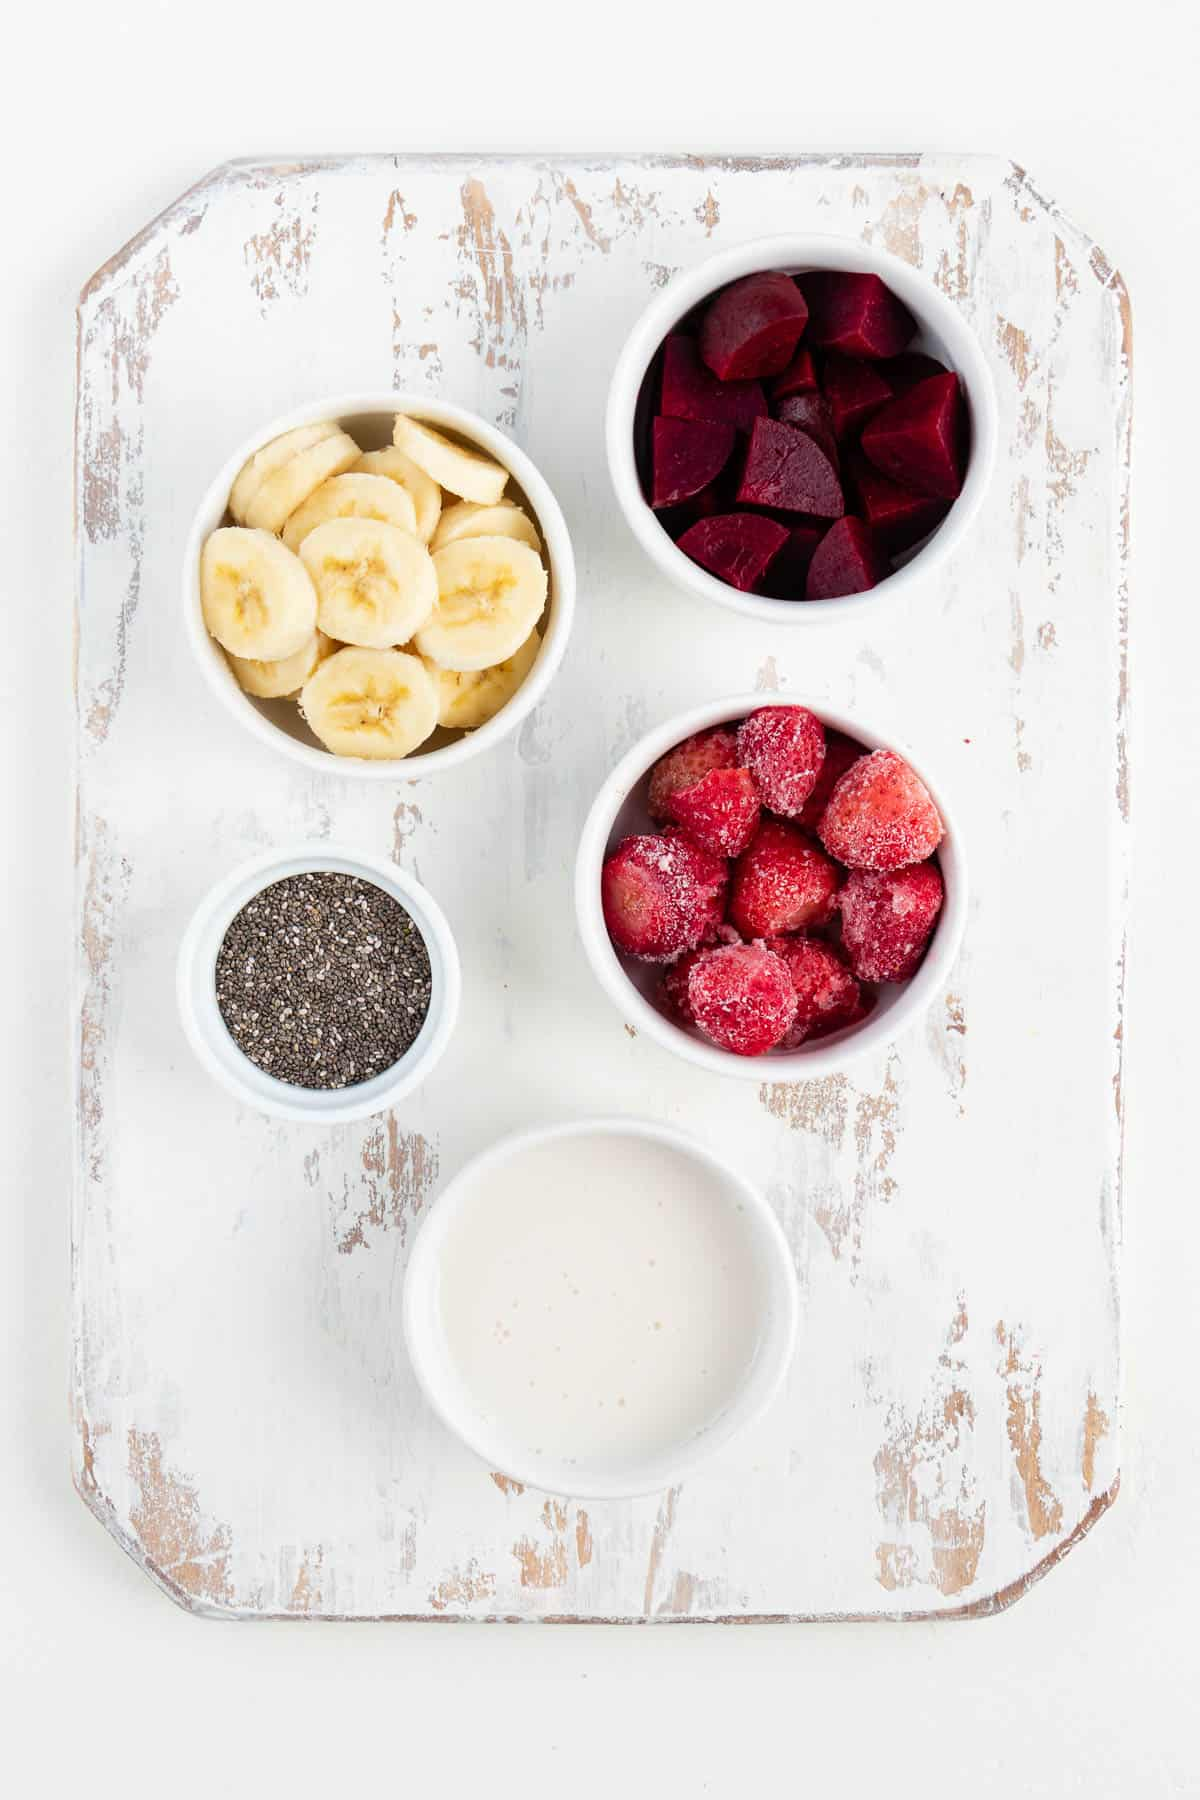 small white bowls filled with bananas, berries, chia seeds, and coconut milk